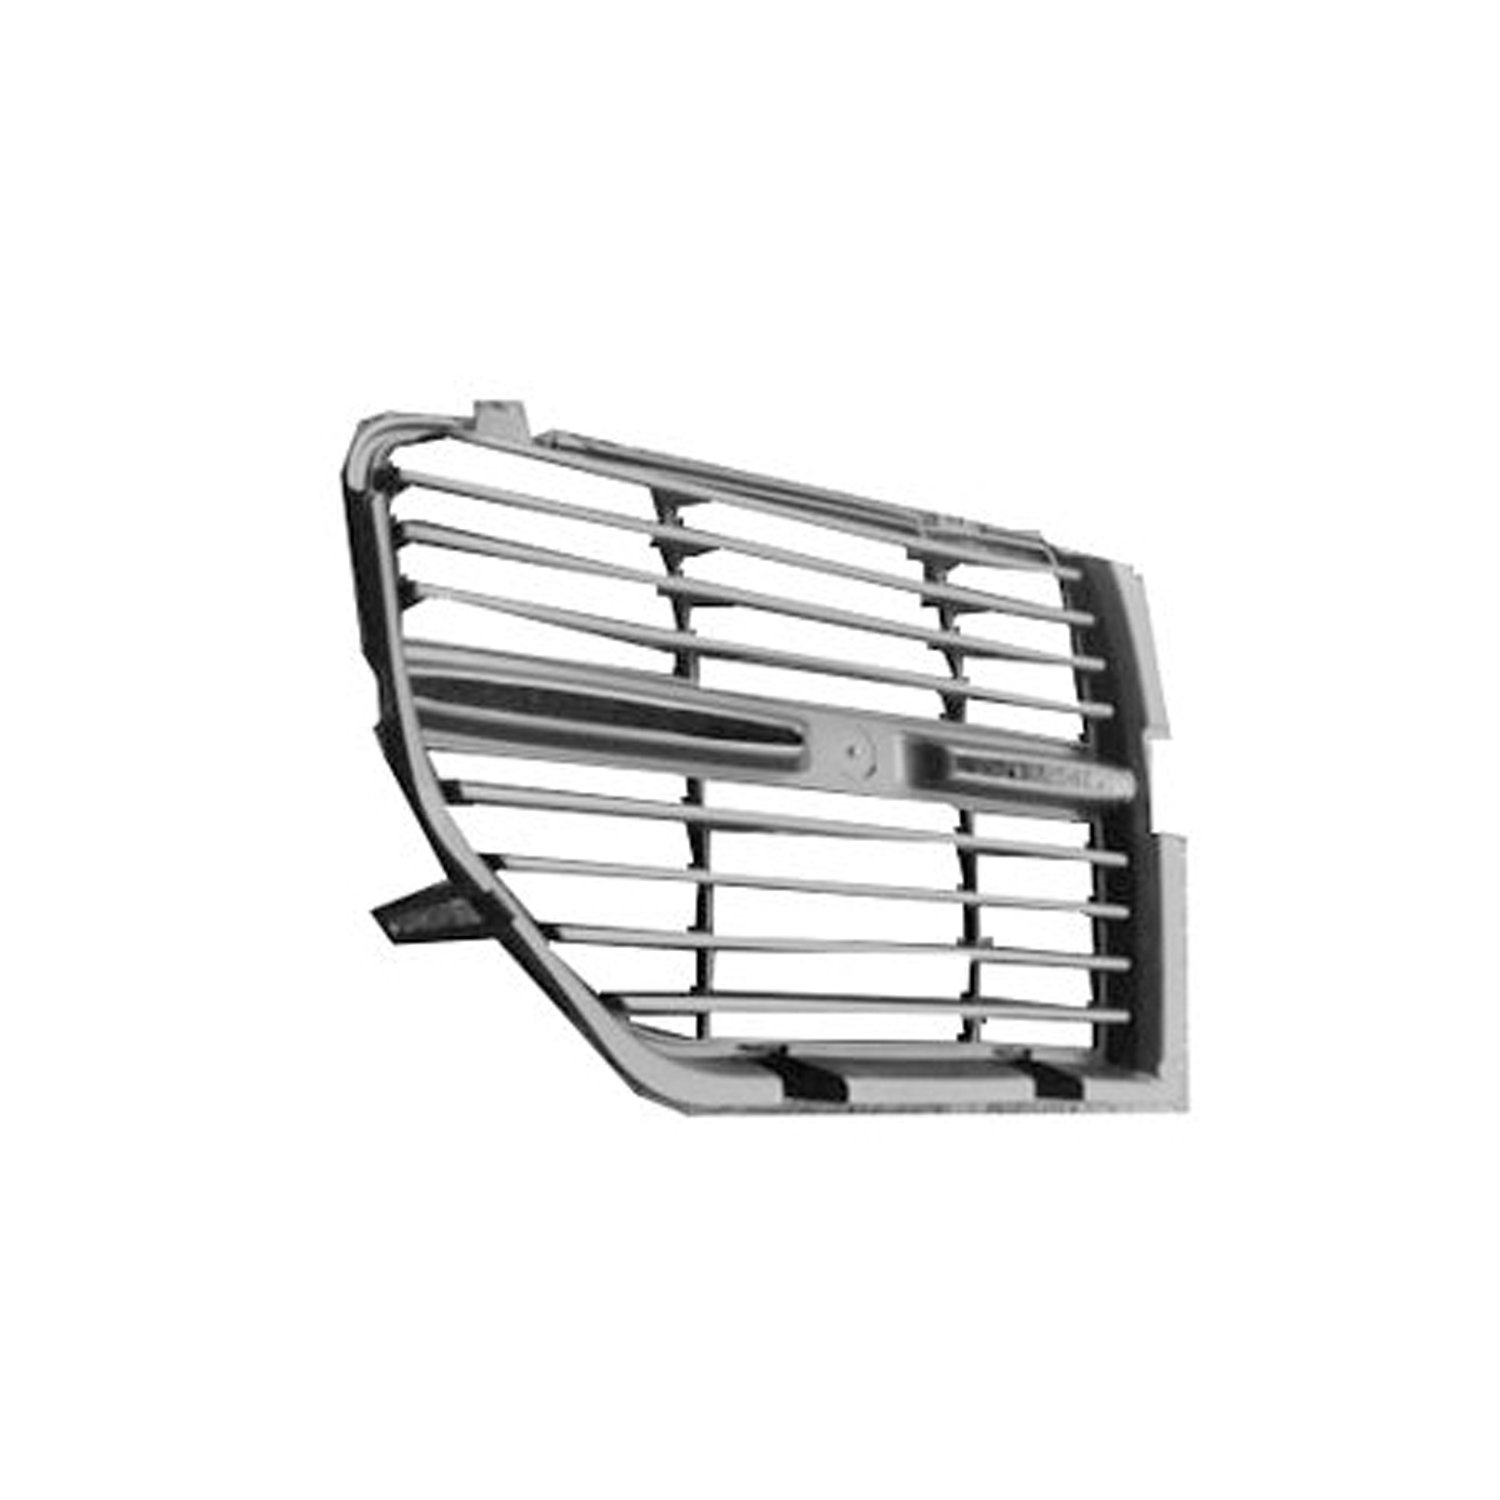 Partslink Number CH1200333 Multiple Manufactures CH1200333V OE Replacement 2005-2007 DODGE MAGNUM Grille